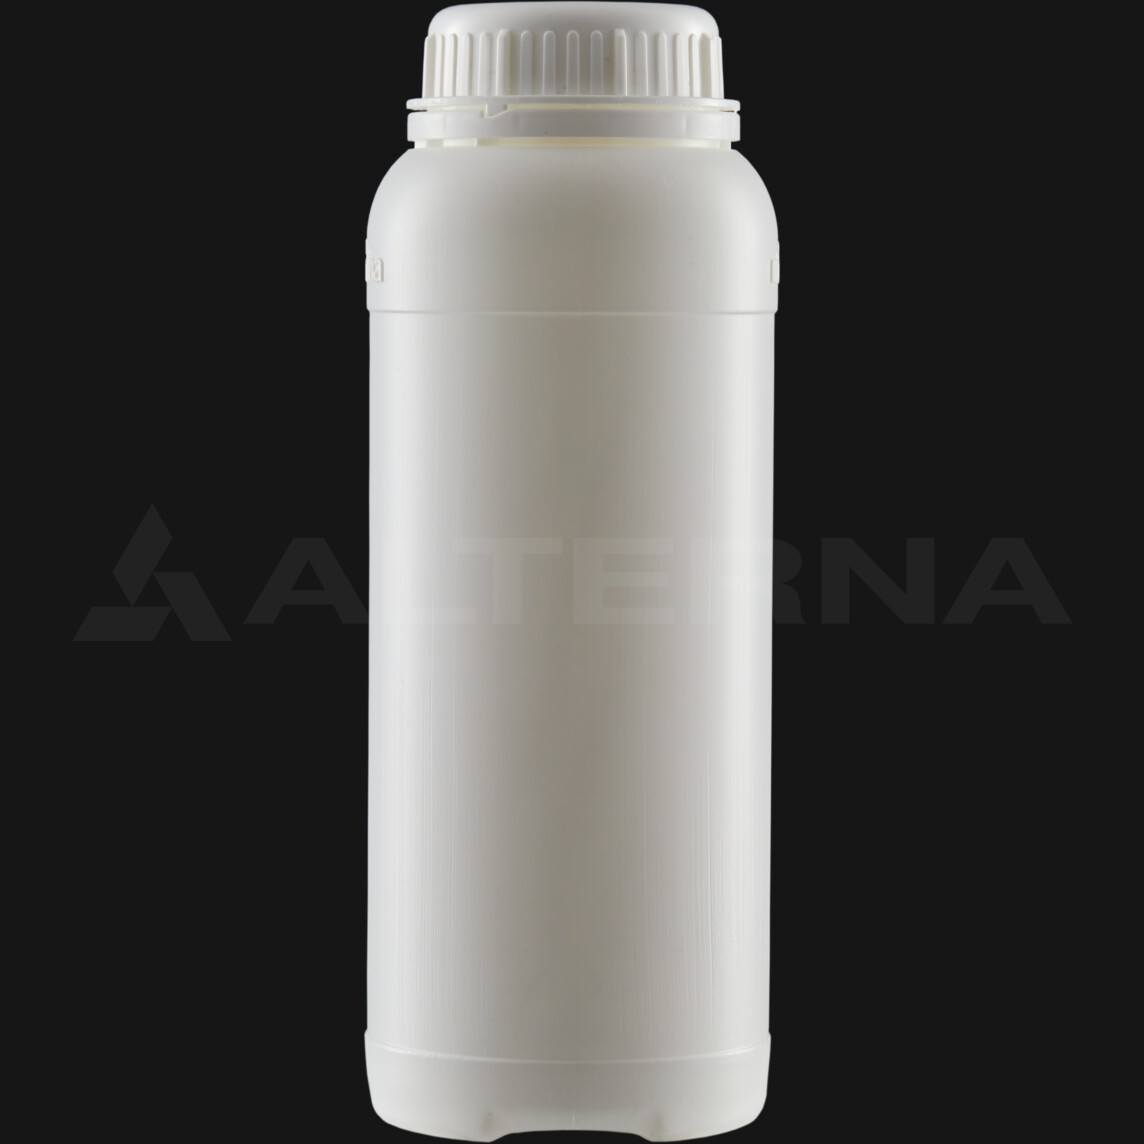 1000 ml HDPE Bottle with 63 mm Foam Seal Vented Secure Cap